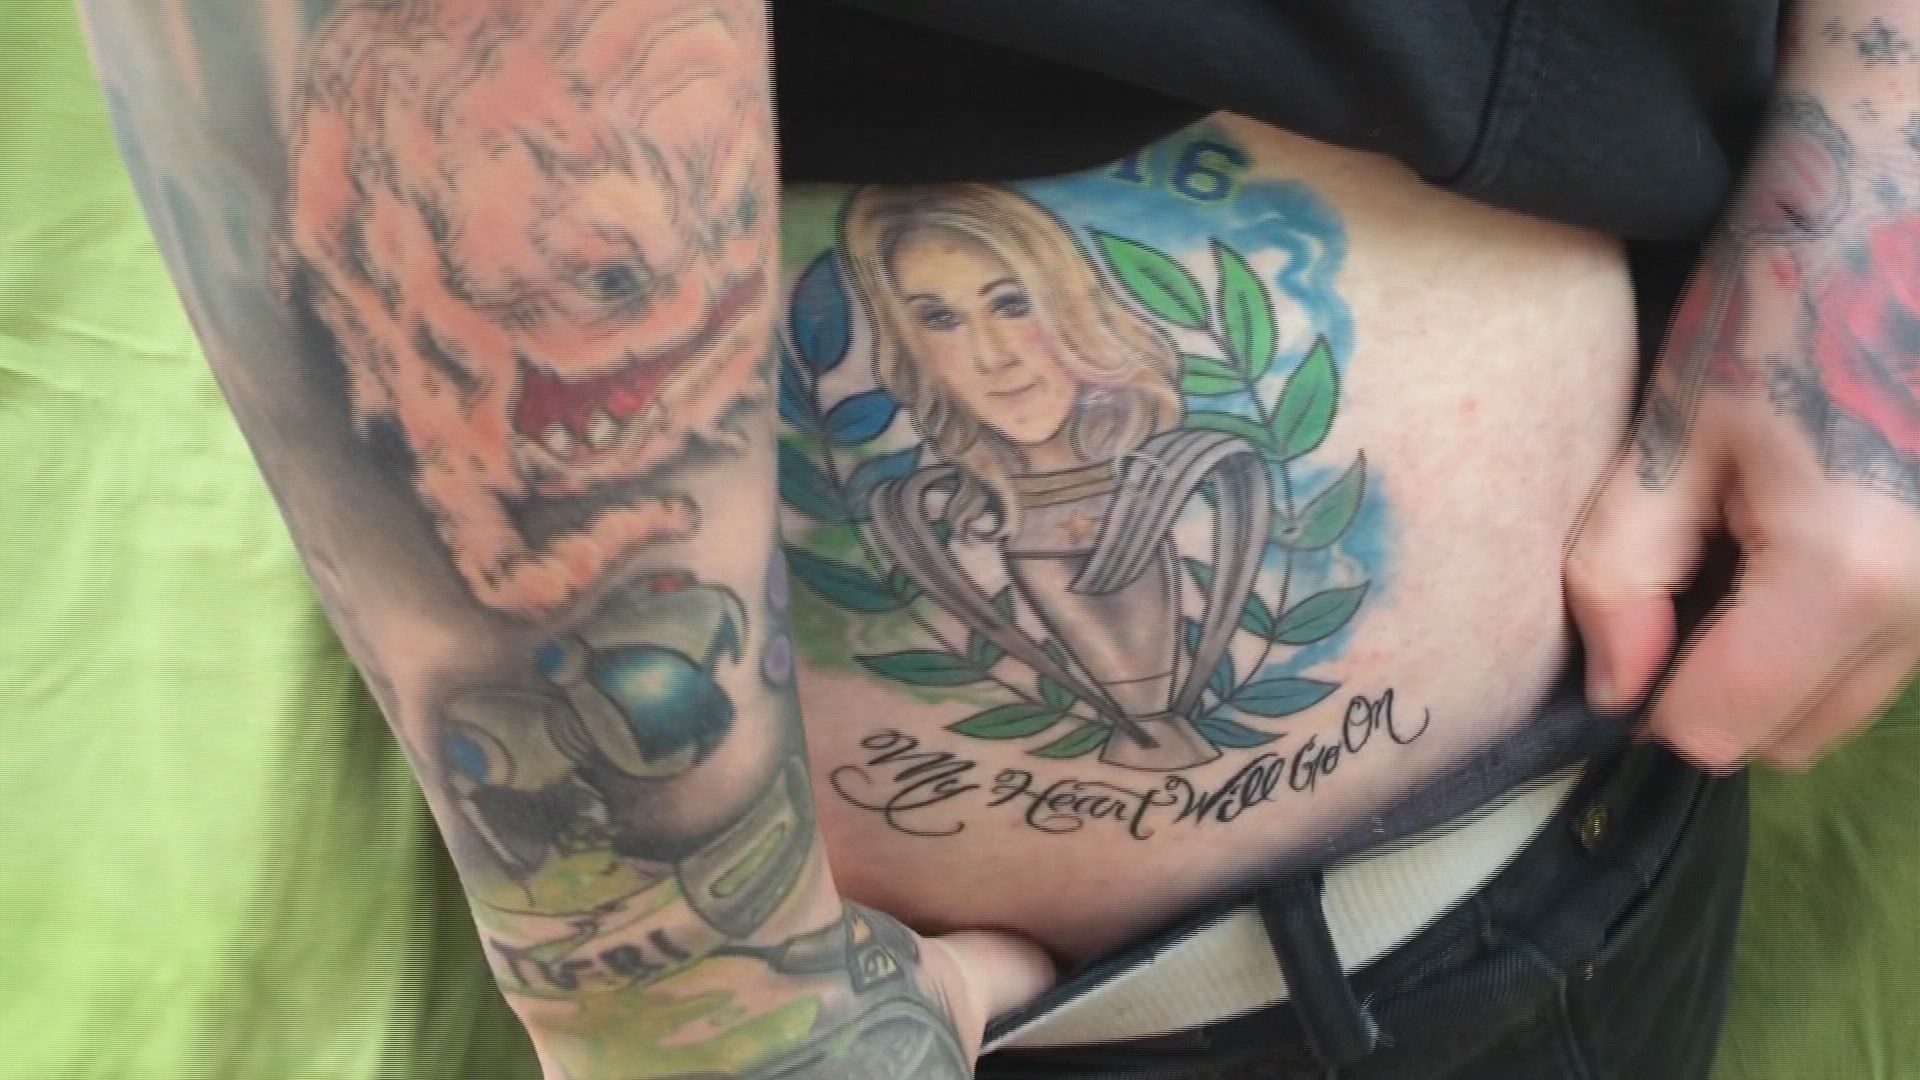 Sounders fan wears heart on sleeve and buttock for Seattle sounders tattoo